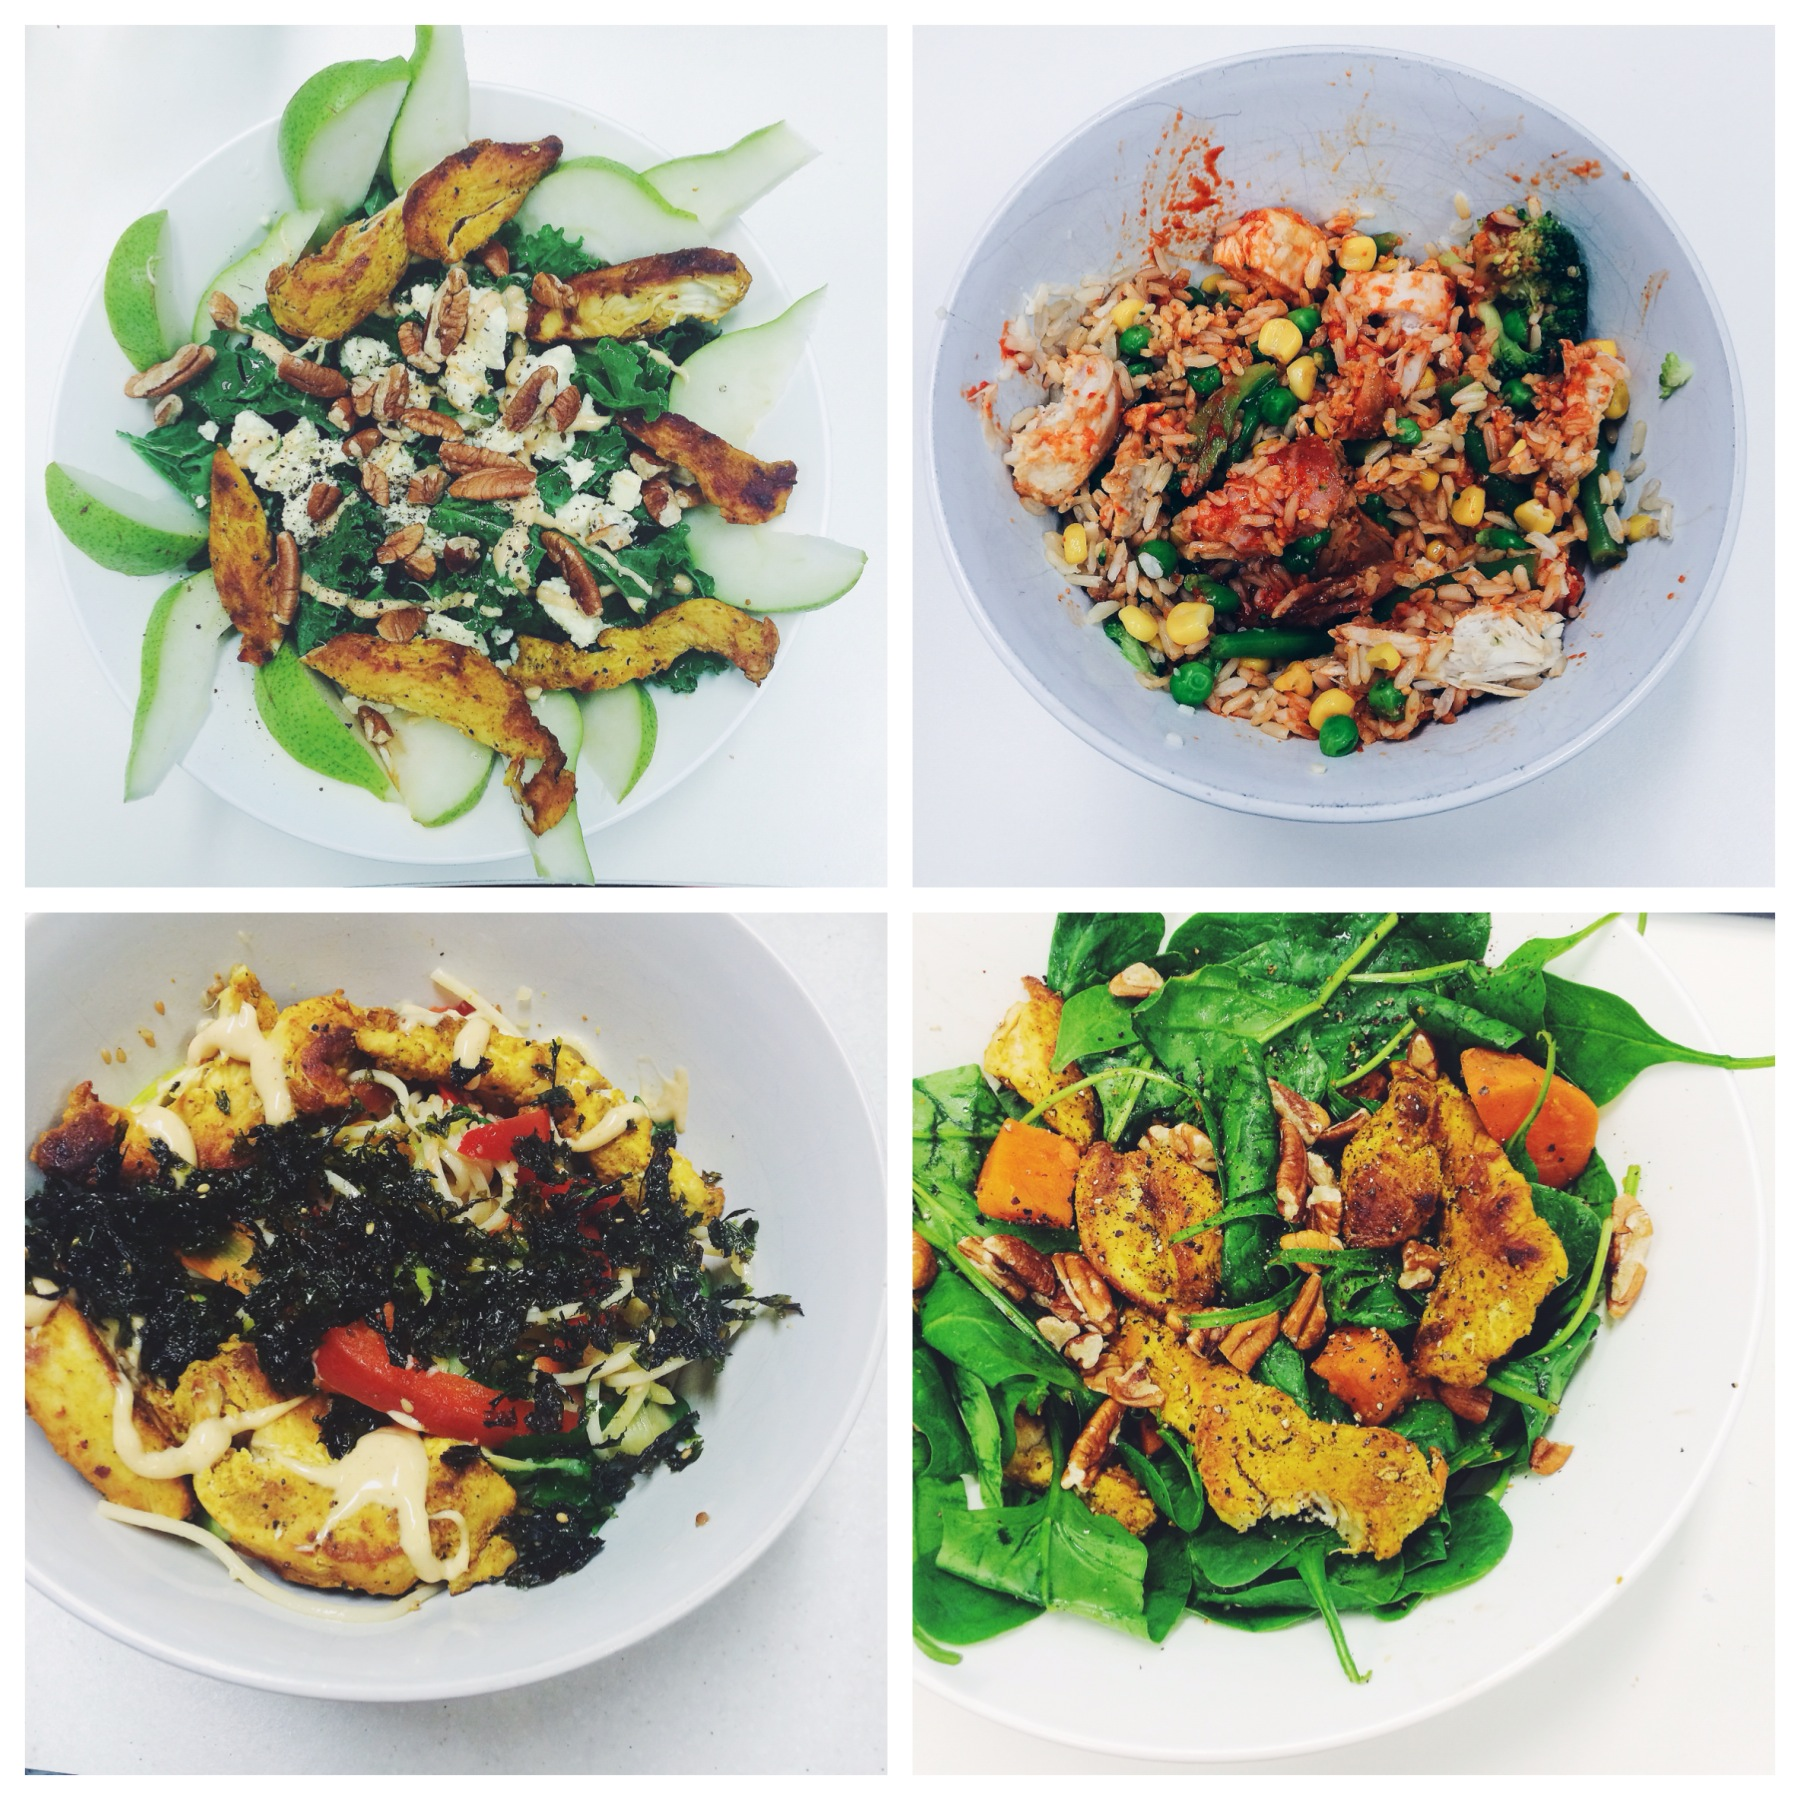 Rocket salad with pear, walnuts & feta | Grilled chicken with mixed veggies & brown rice drizzled with siracha sauce | Asian chicken salad with spicy peri peri sauce | Spinach & sweet potato salad with pine nuts.